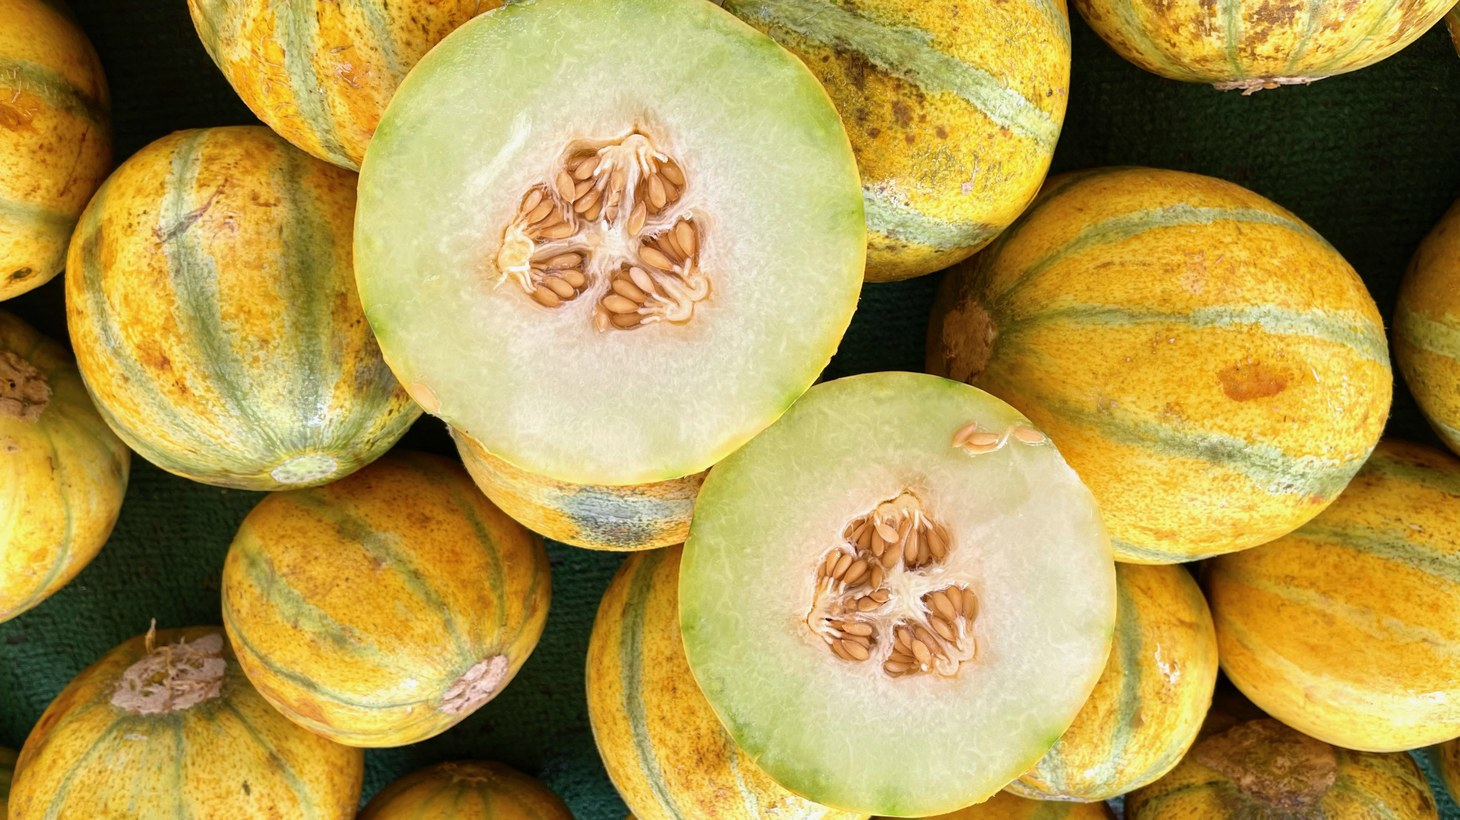 The Ogen melon is originally from Israel, and has yellow and green vertical stripes on its thin rind.